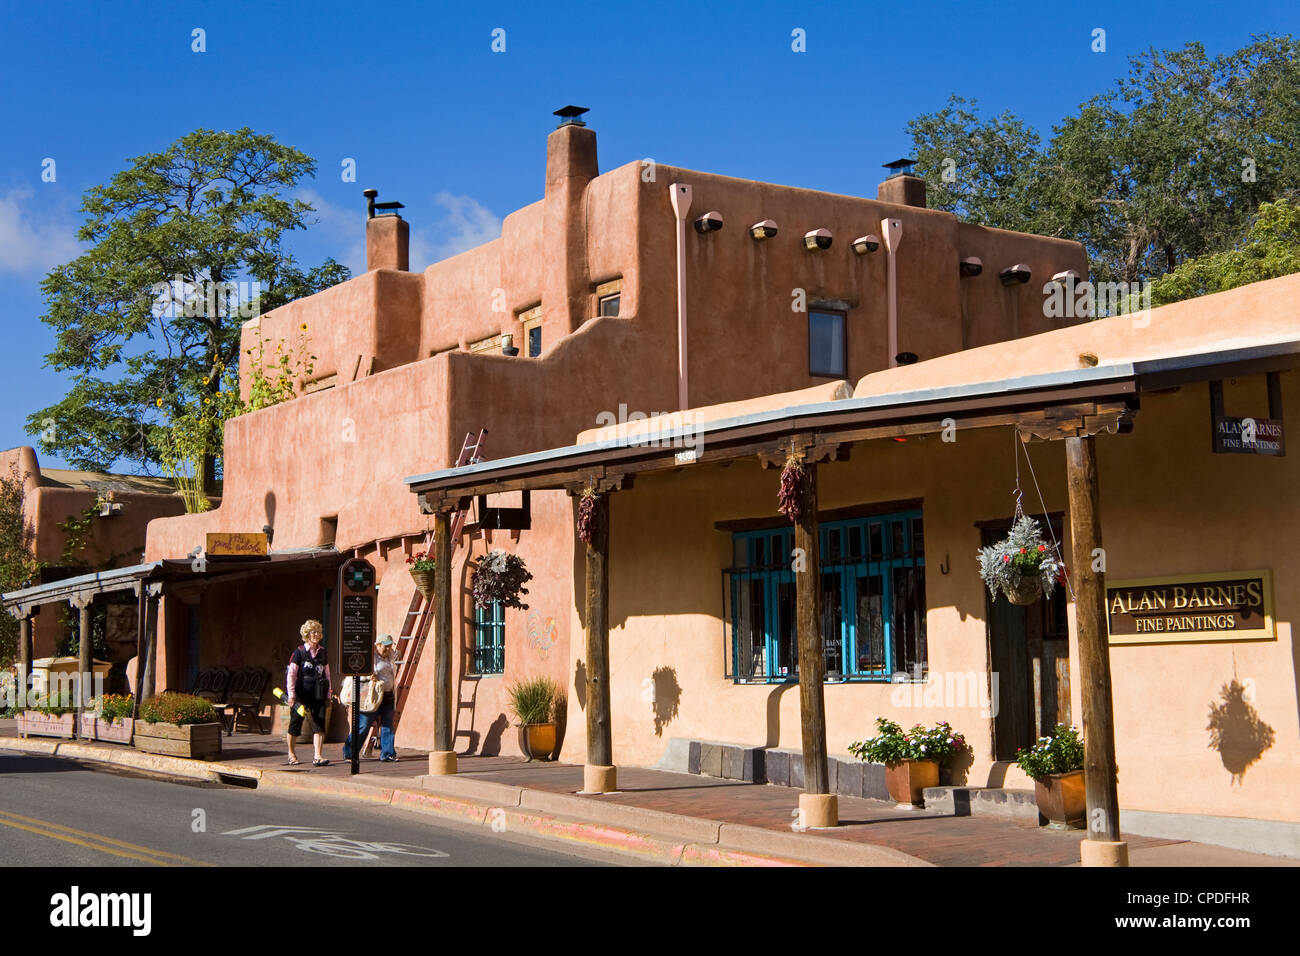 Store on Old Santa Fe Trail, Santa Fe, New Mexico, United States of America, North America - Stock Image